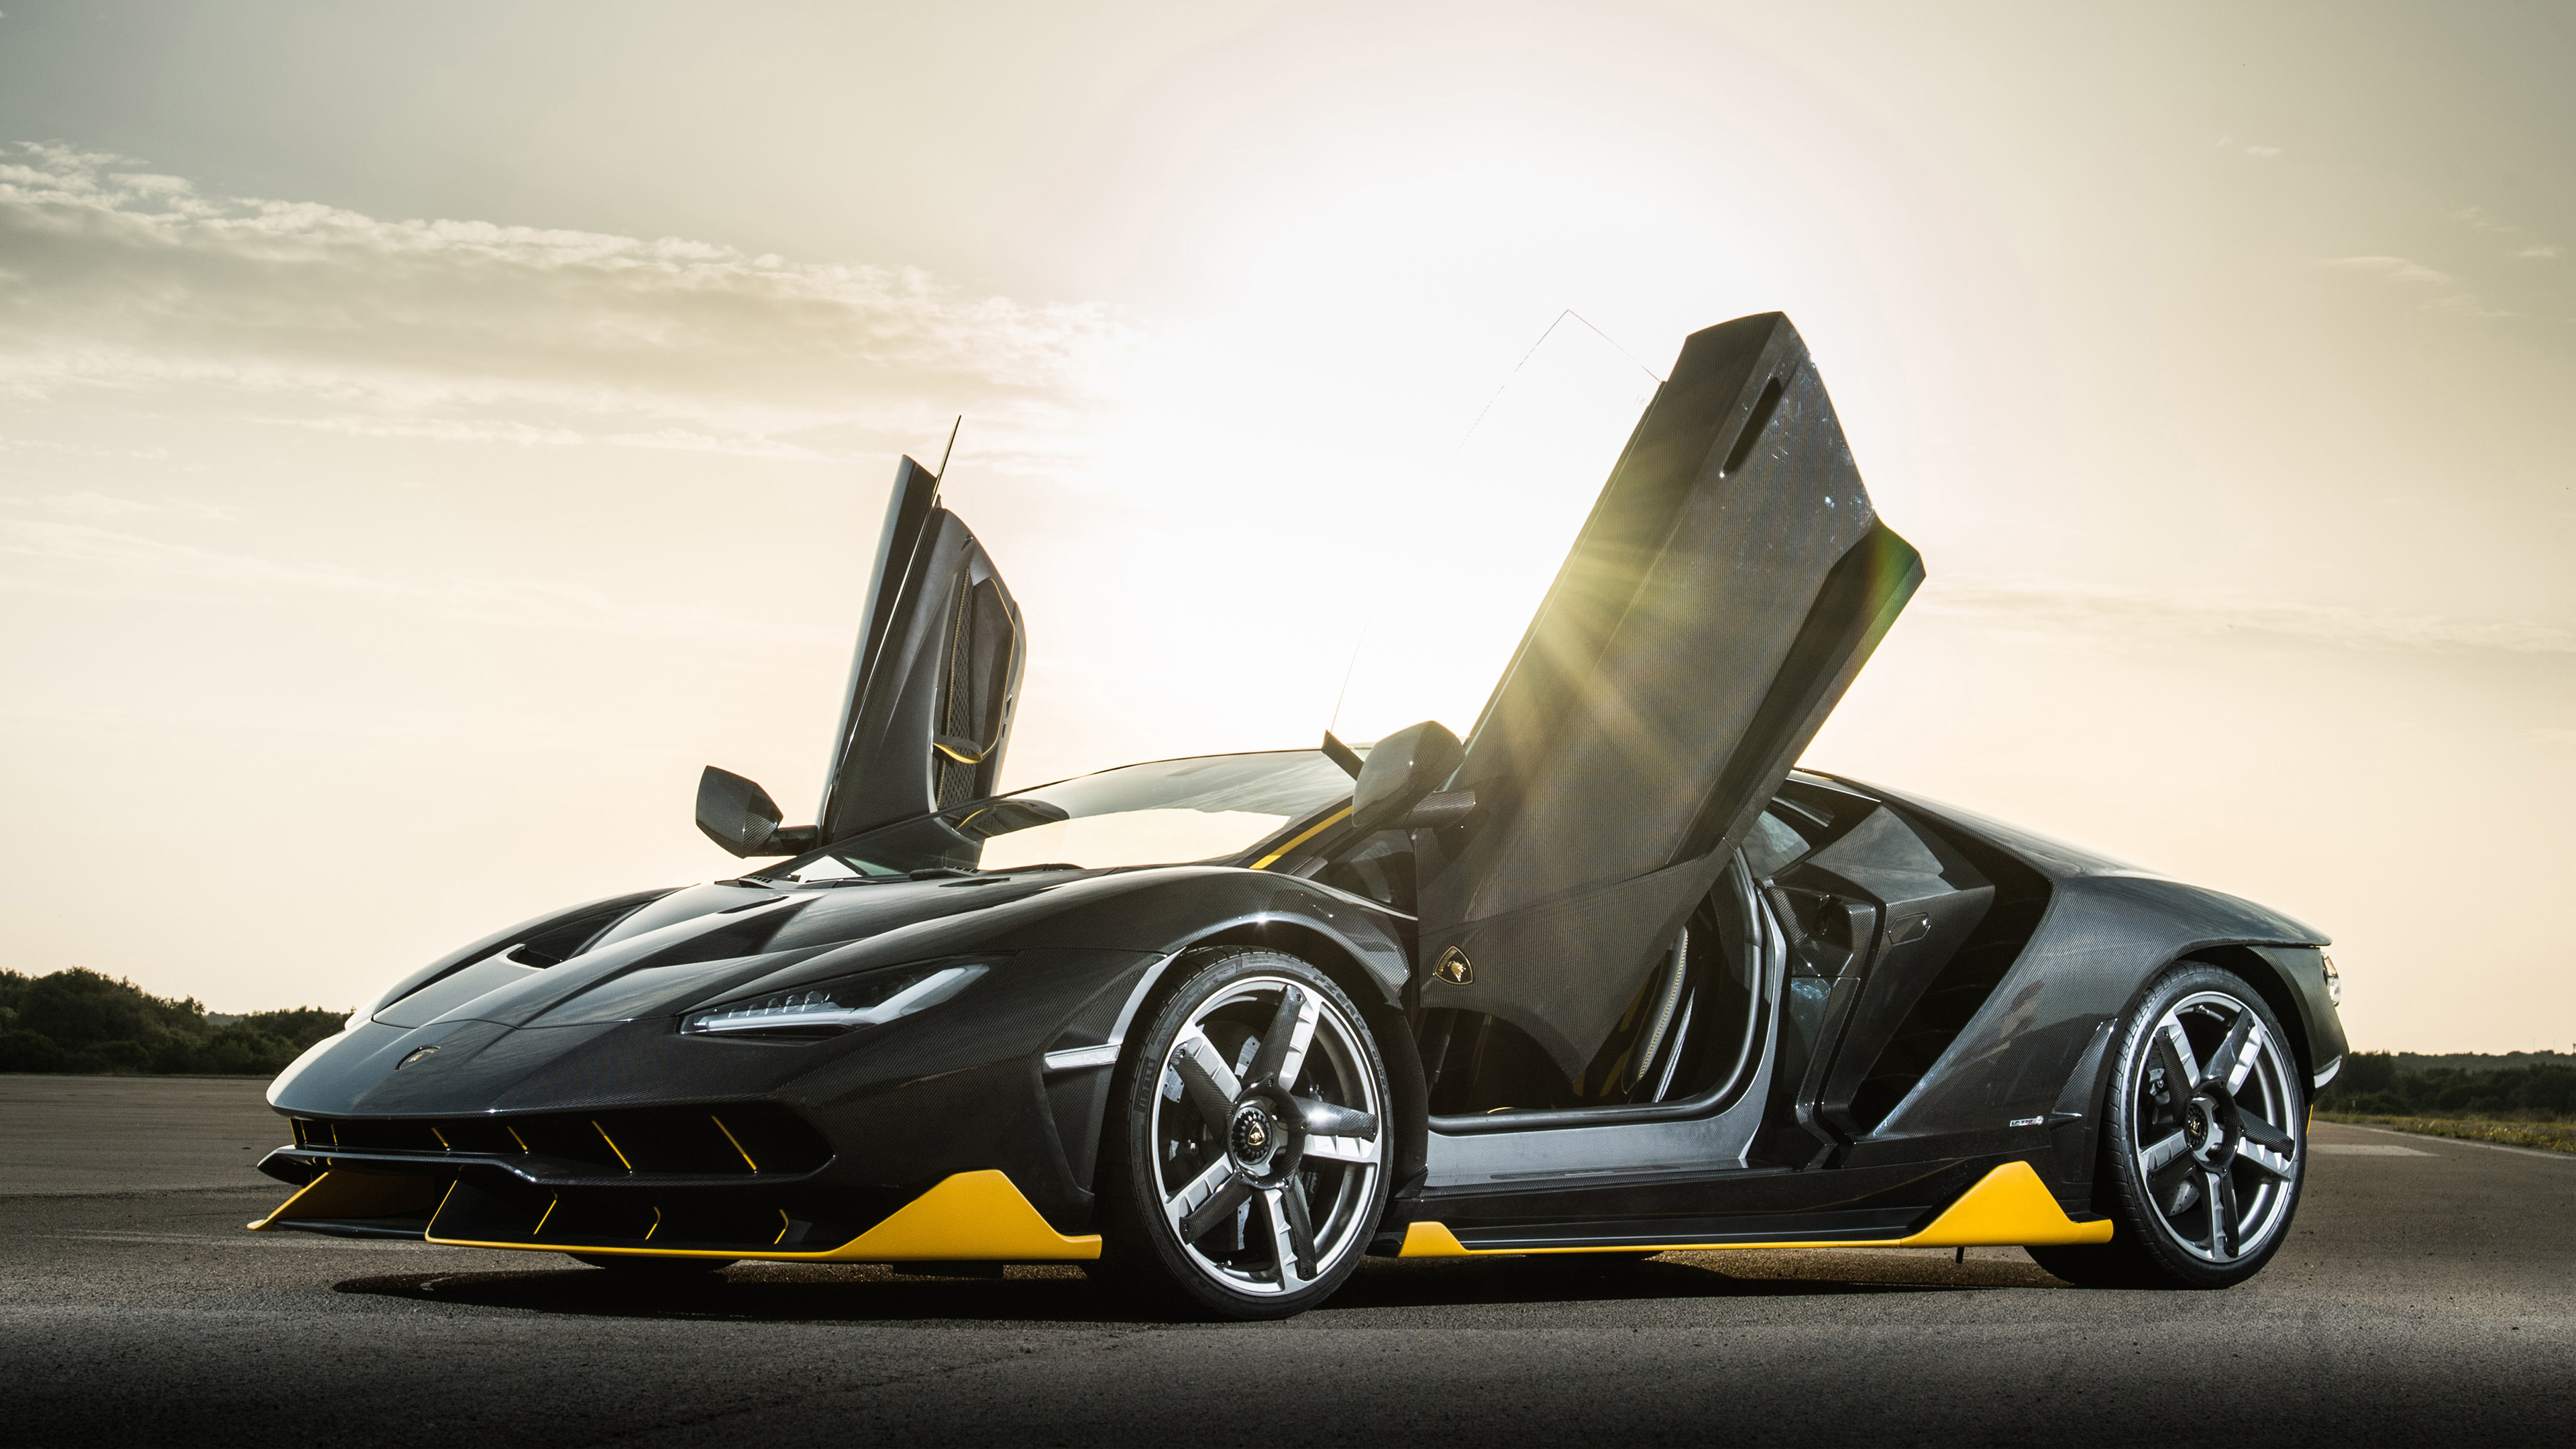 Mercedes Car Wallpapers For Windows 7 Lamborghini Centenario 4k Wallpaper Hd Car Wallpapers